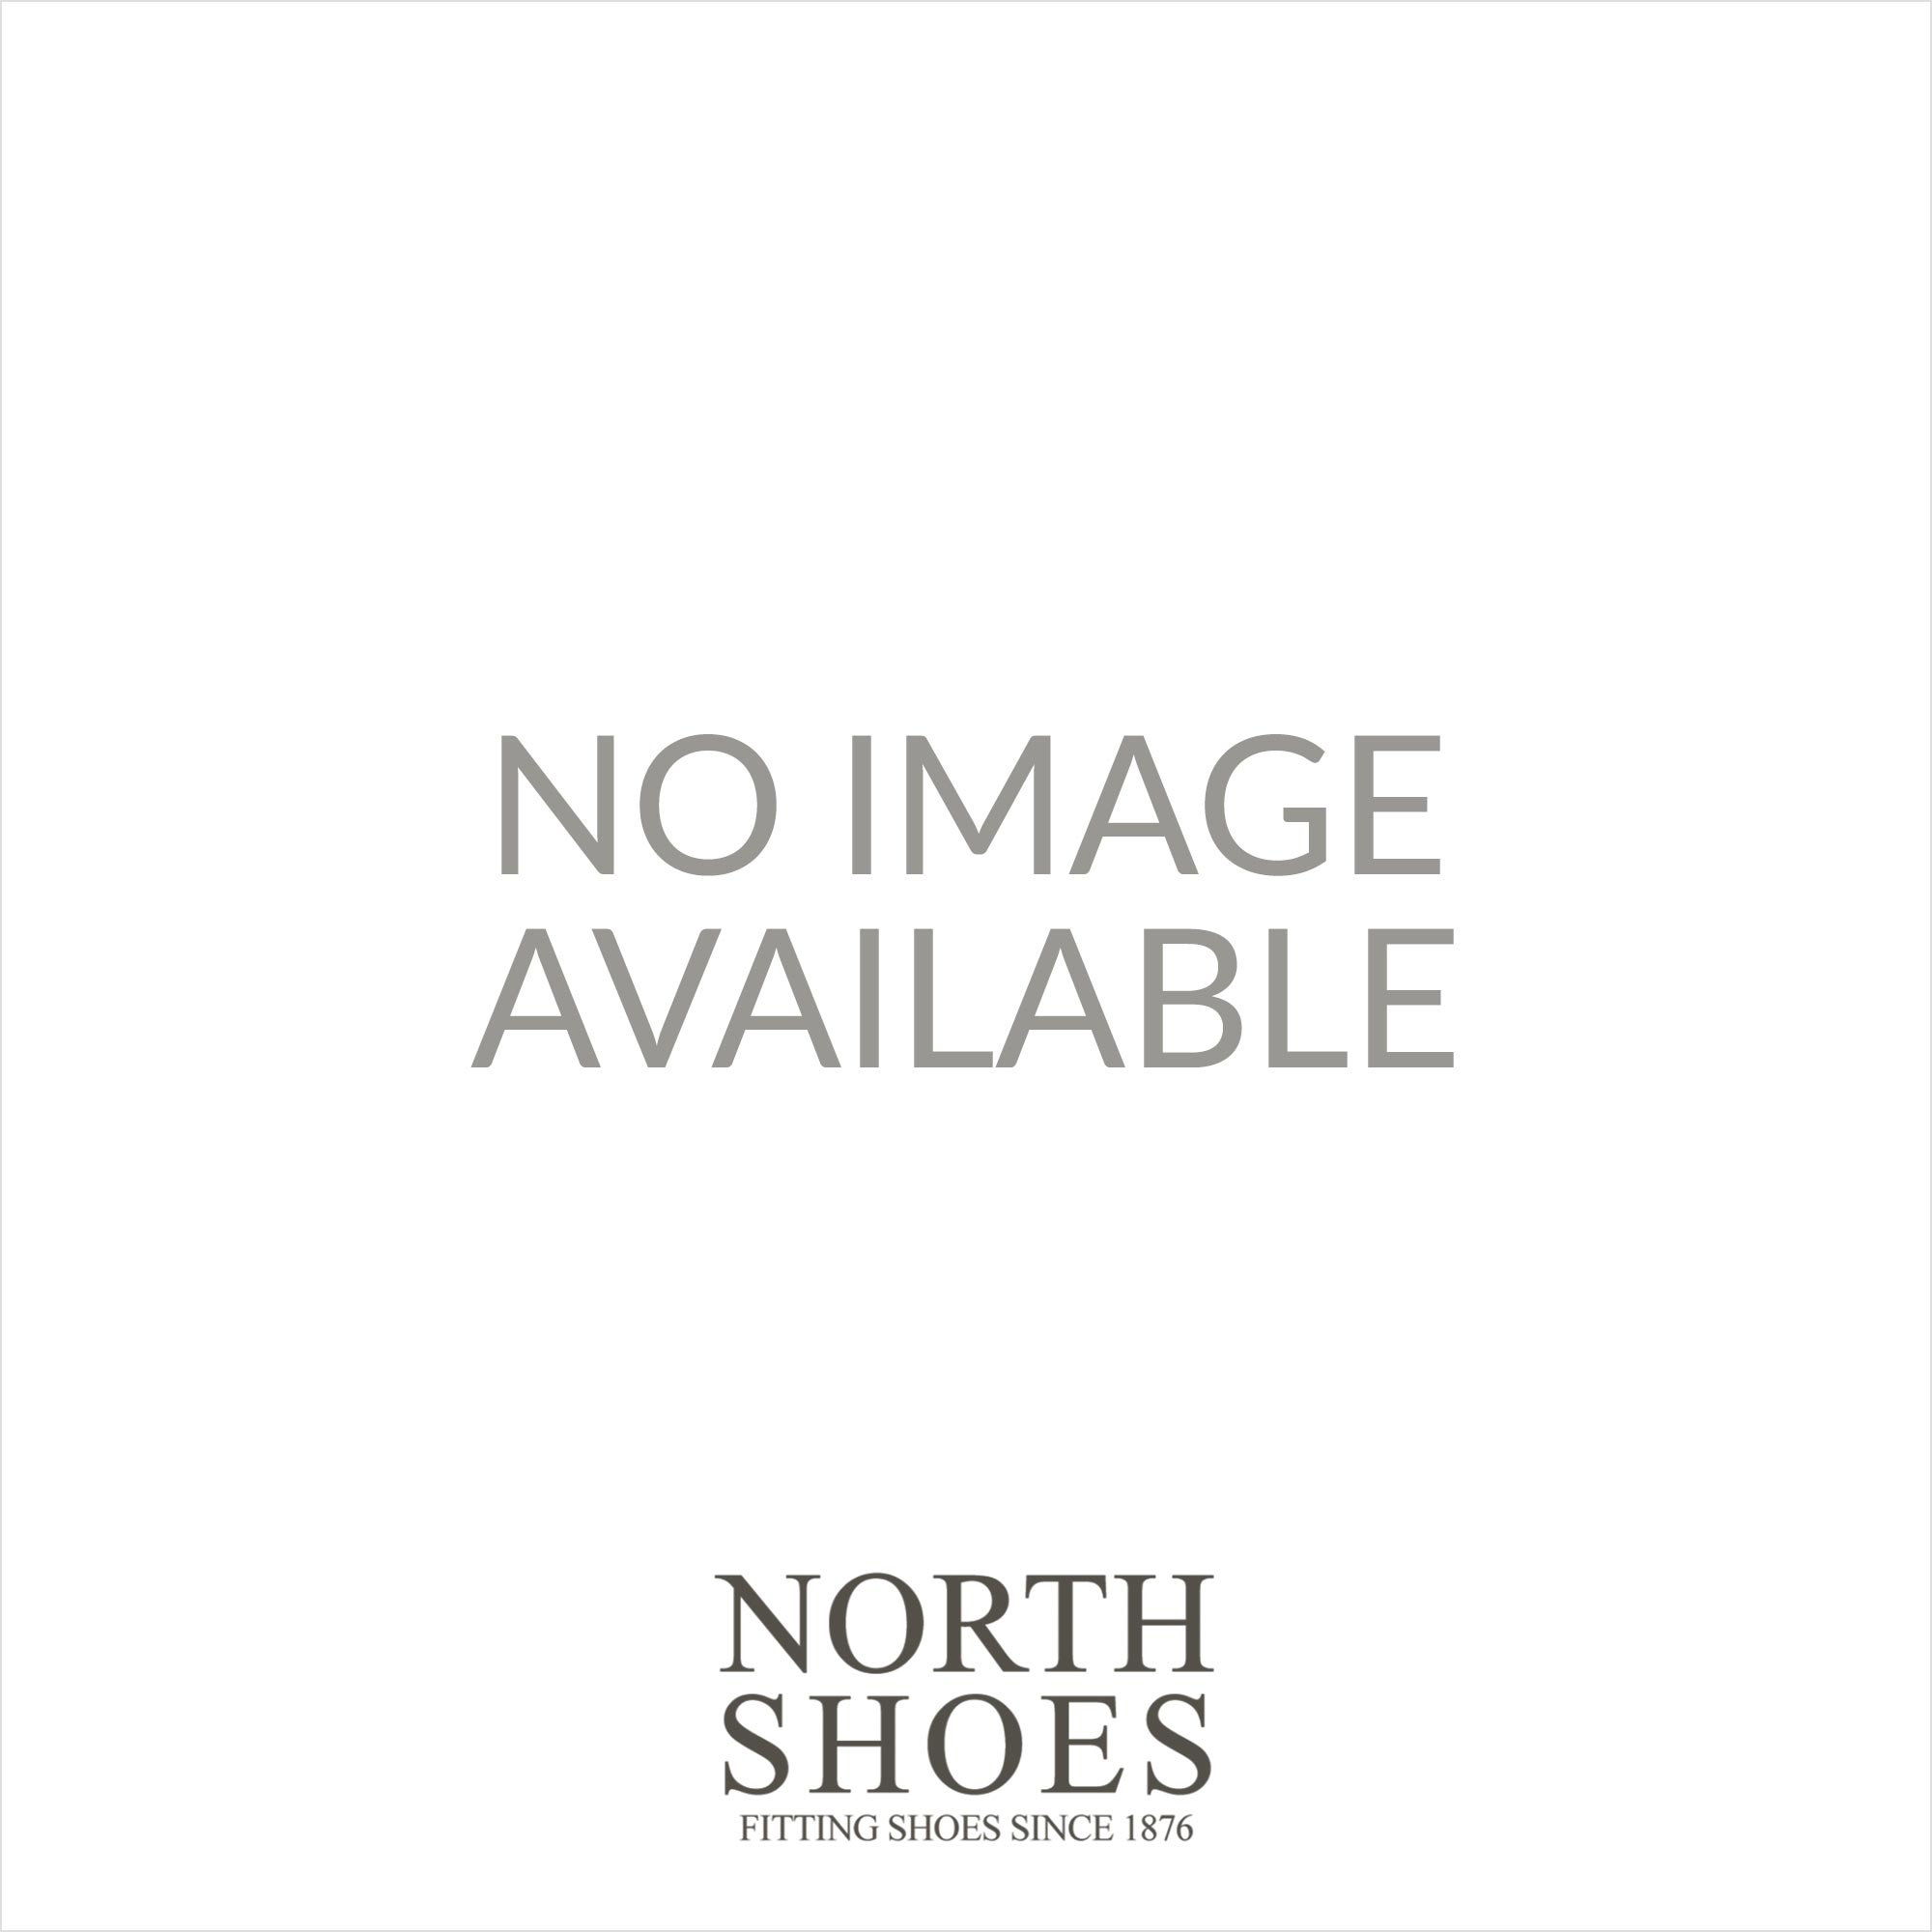 53161fb413d0 Skechers Equalizer - Double Play 51509 Navy Knitted Mesh Mens Slip On  Casual Shoe - Skechers from North Shoes UK